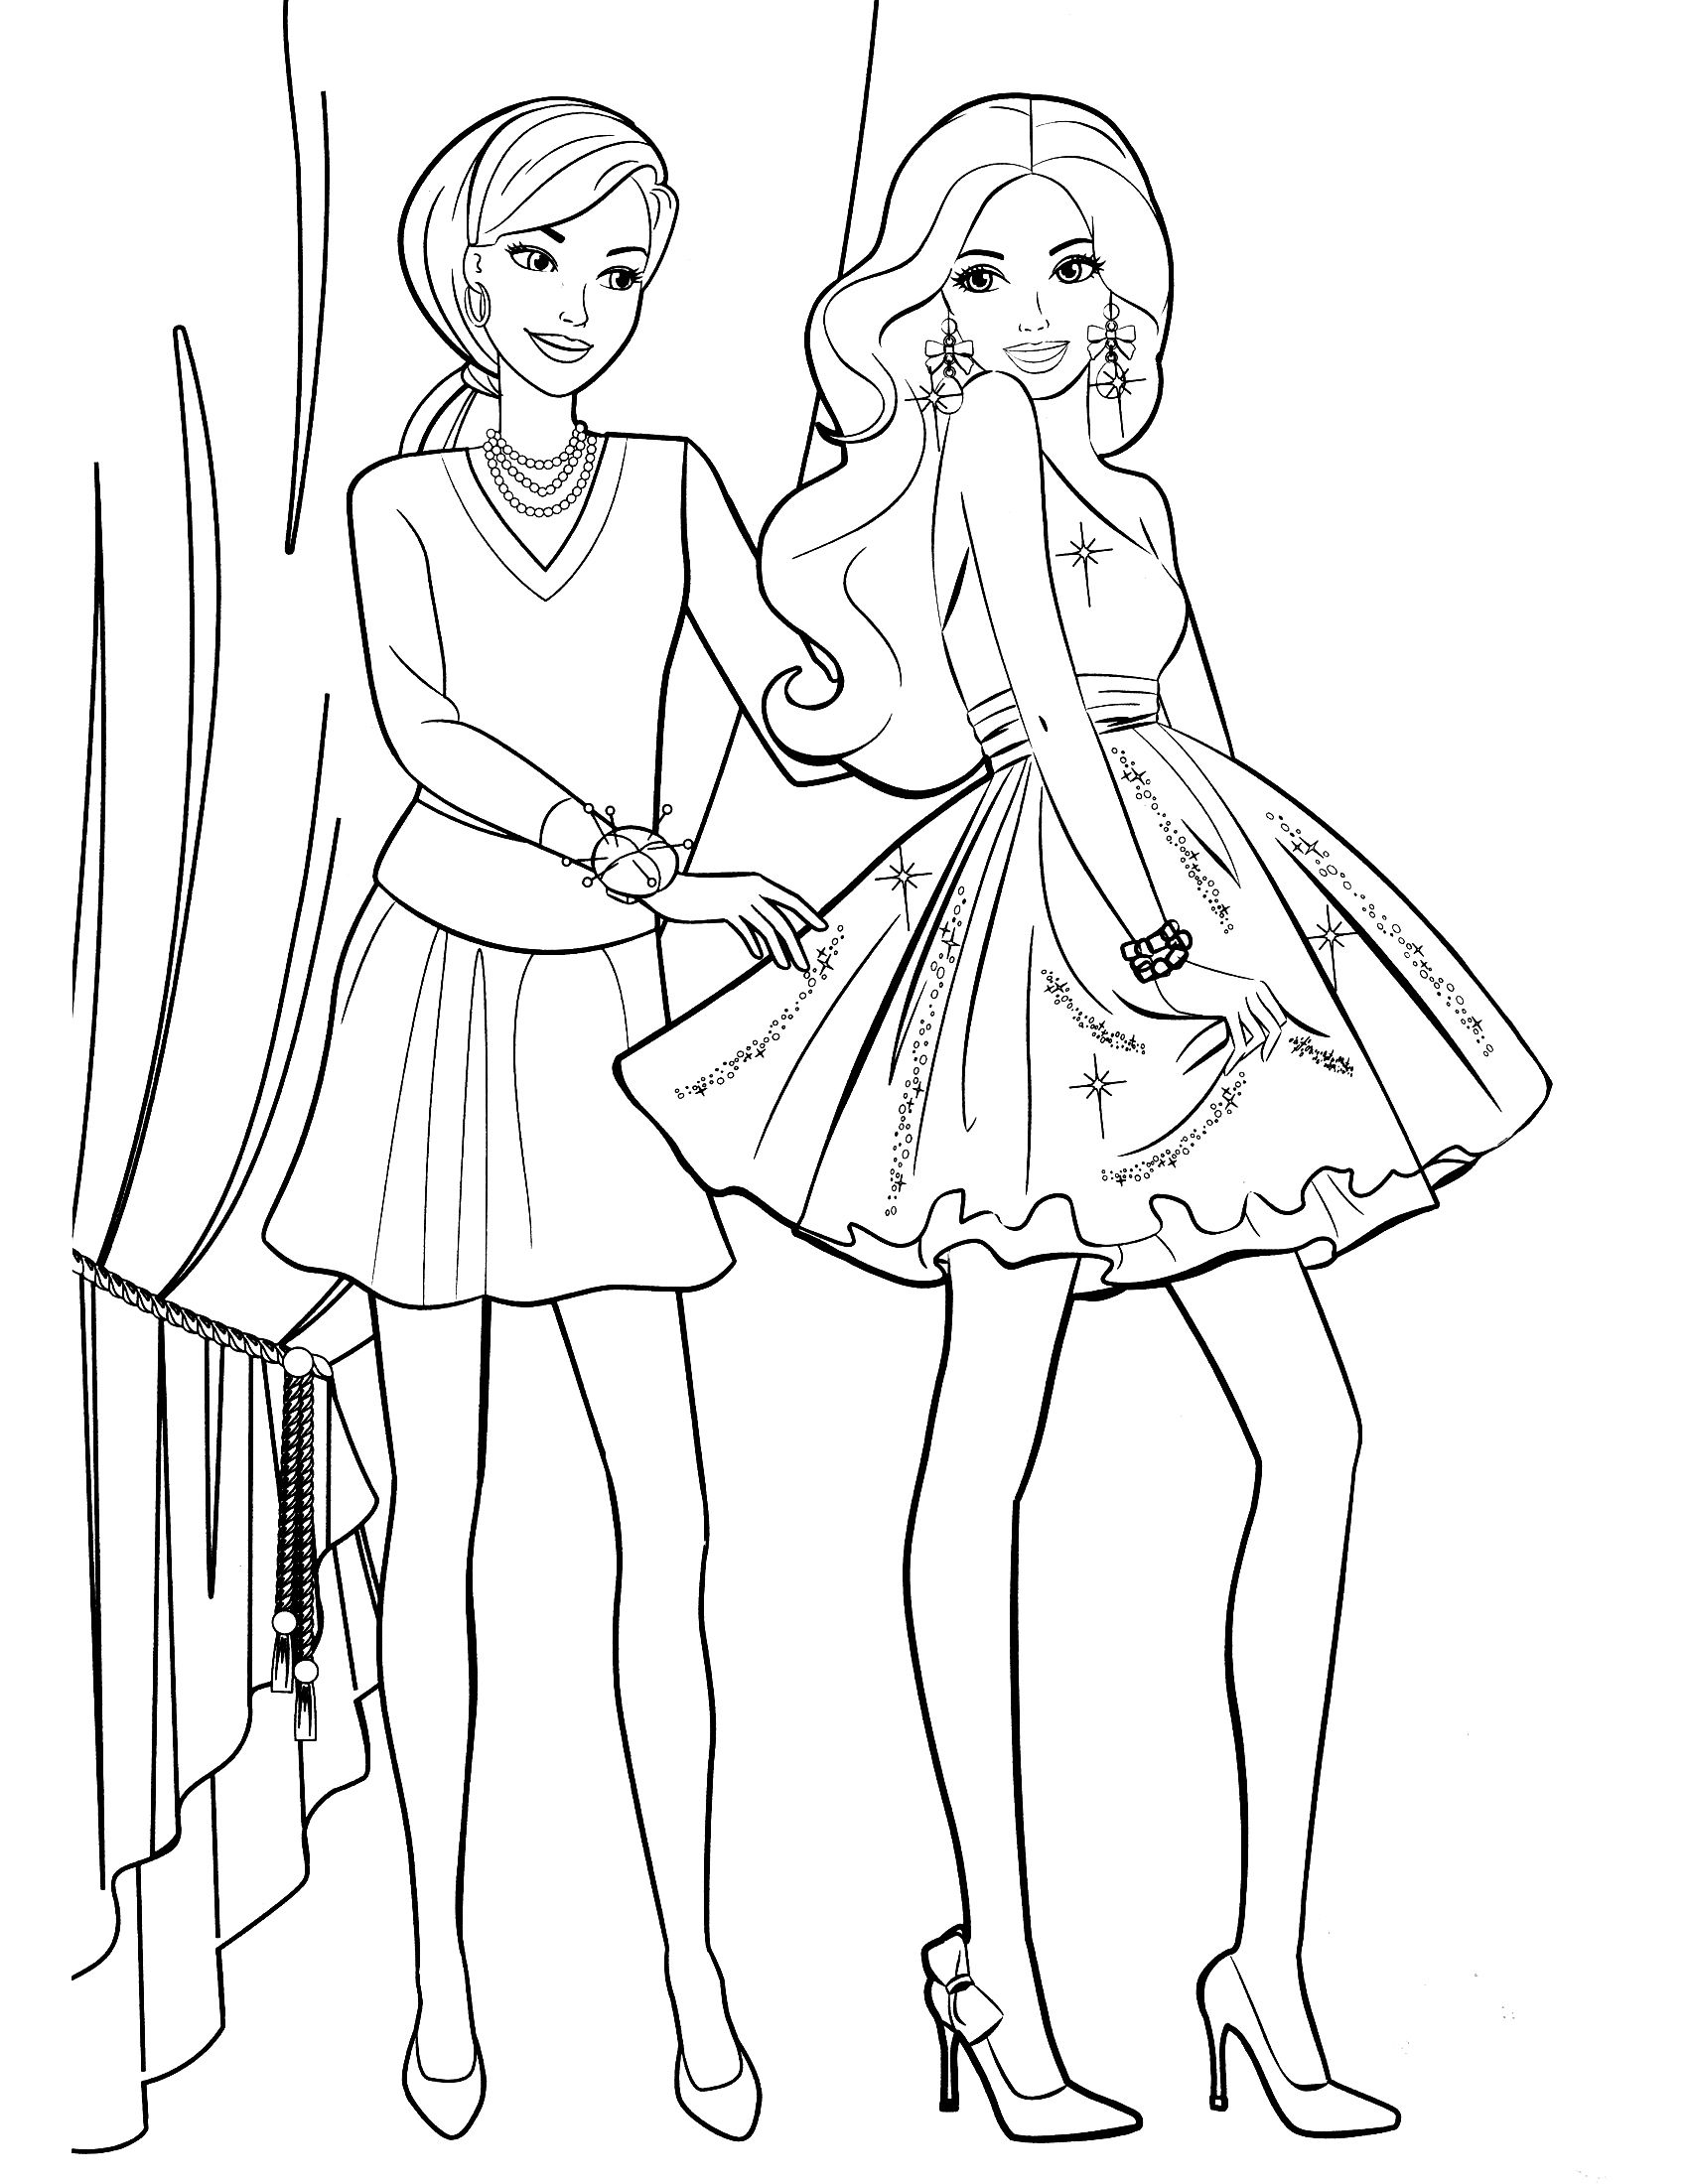 Free printable coloring pages barbie princess - Barbie Coloring Pages 2 Jpg